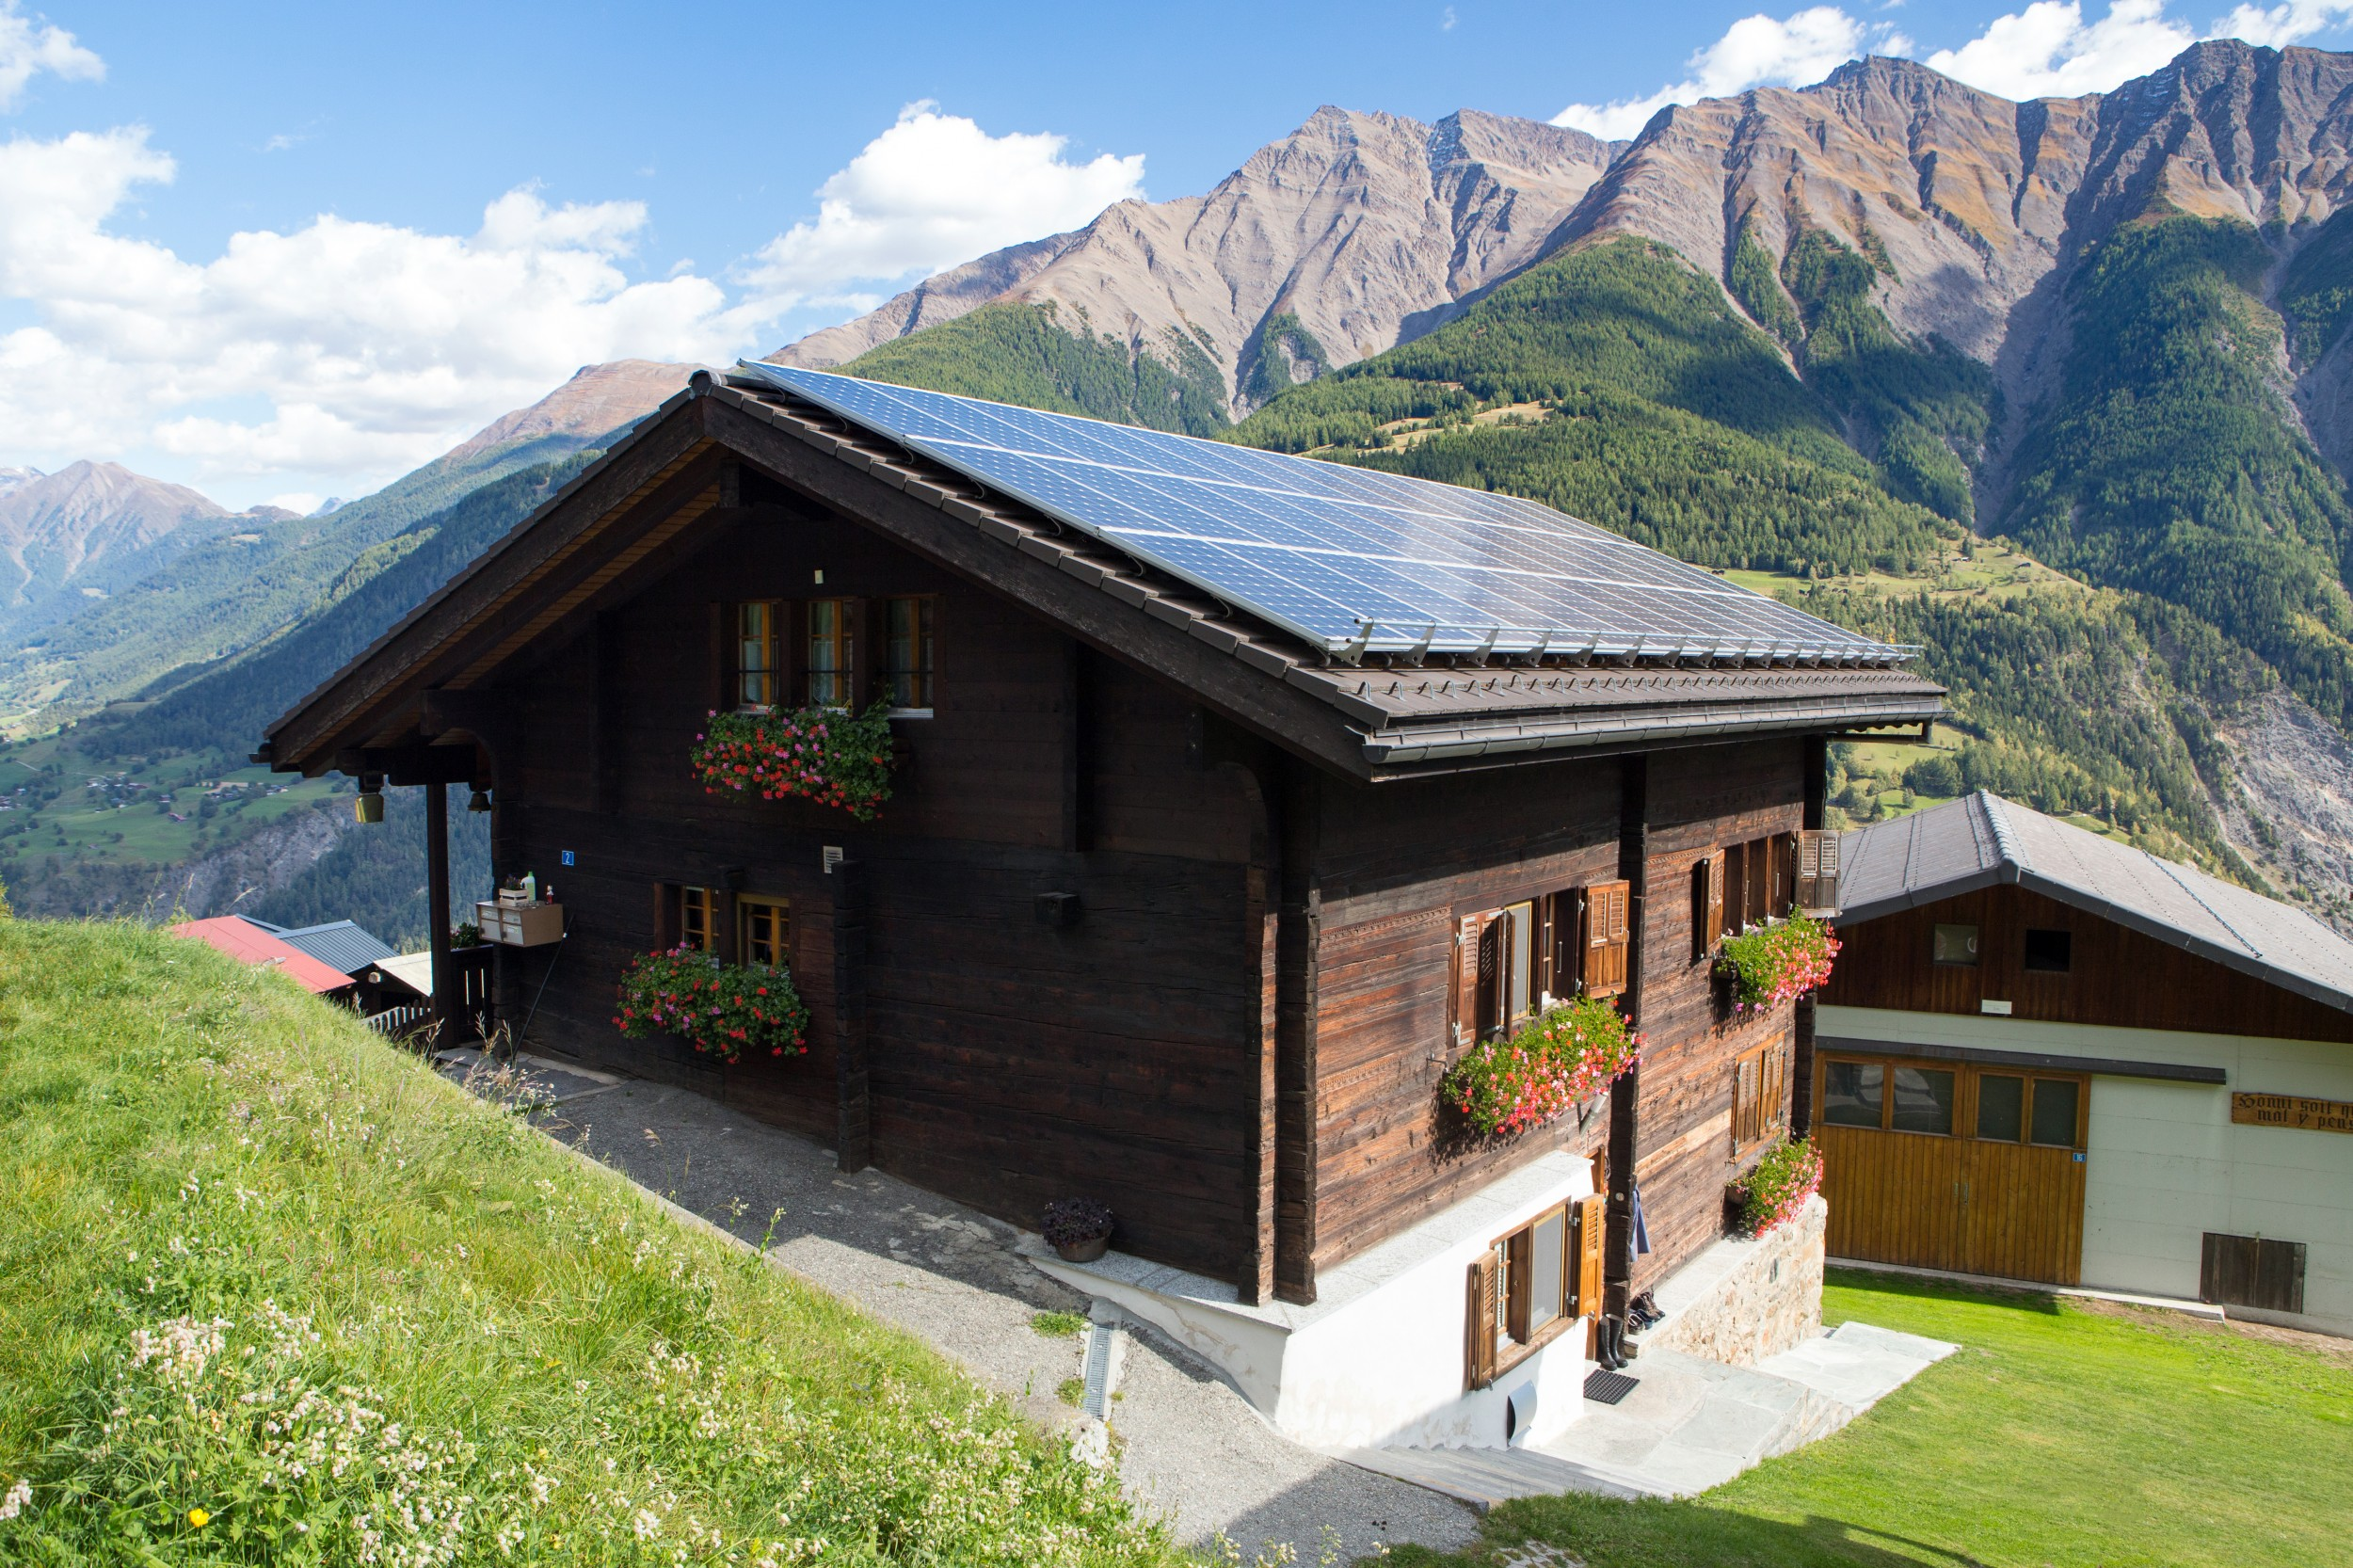 Before becoming an ideal addition to any roof, the tandem solar cell developed by Swiss researchers must offer better weather resistance.